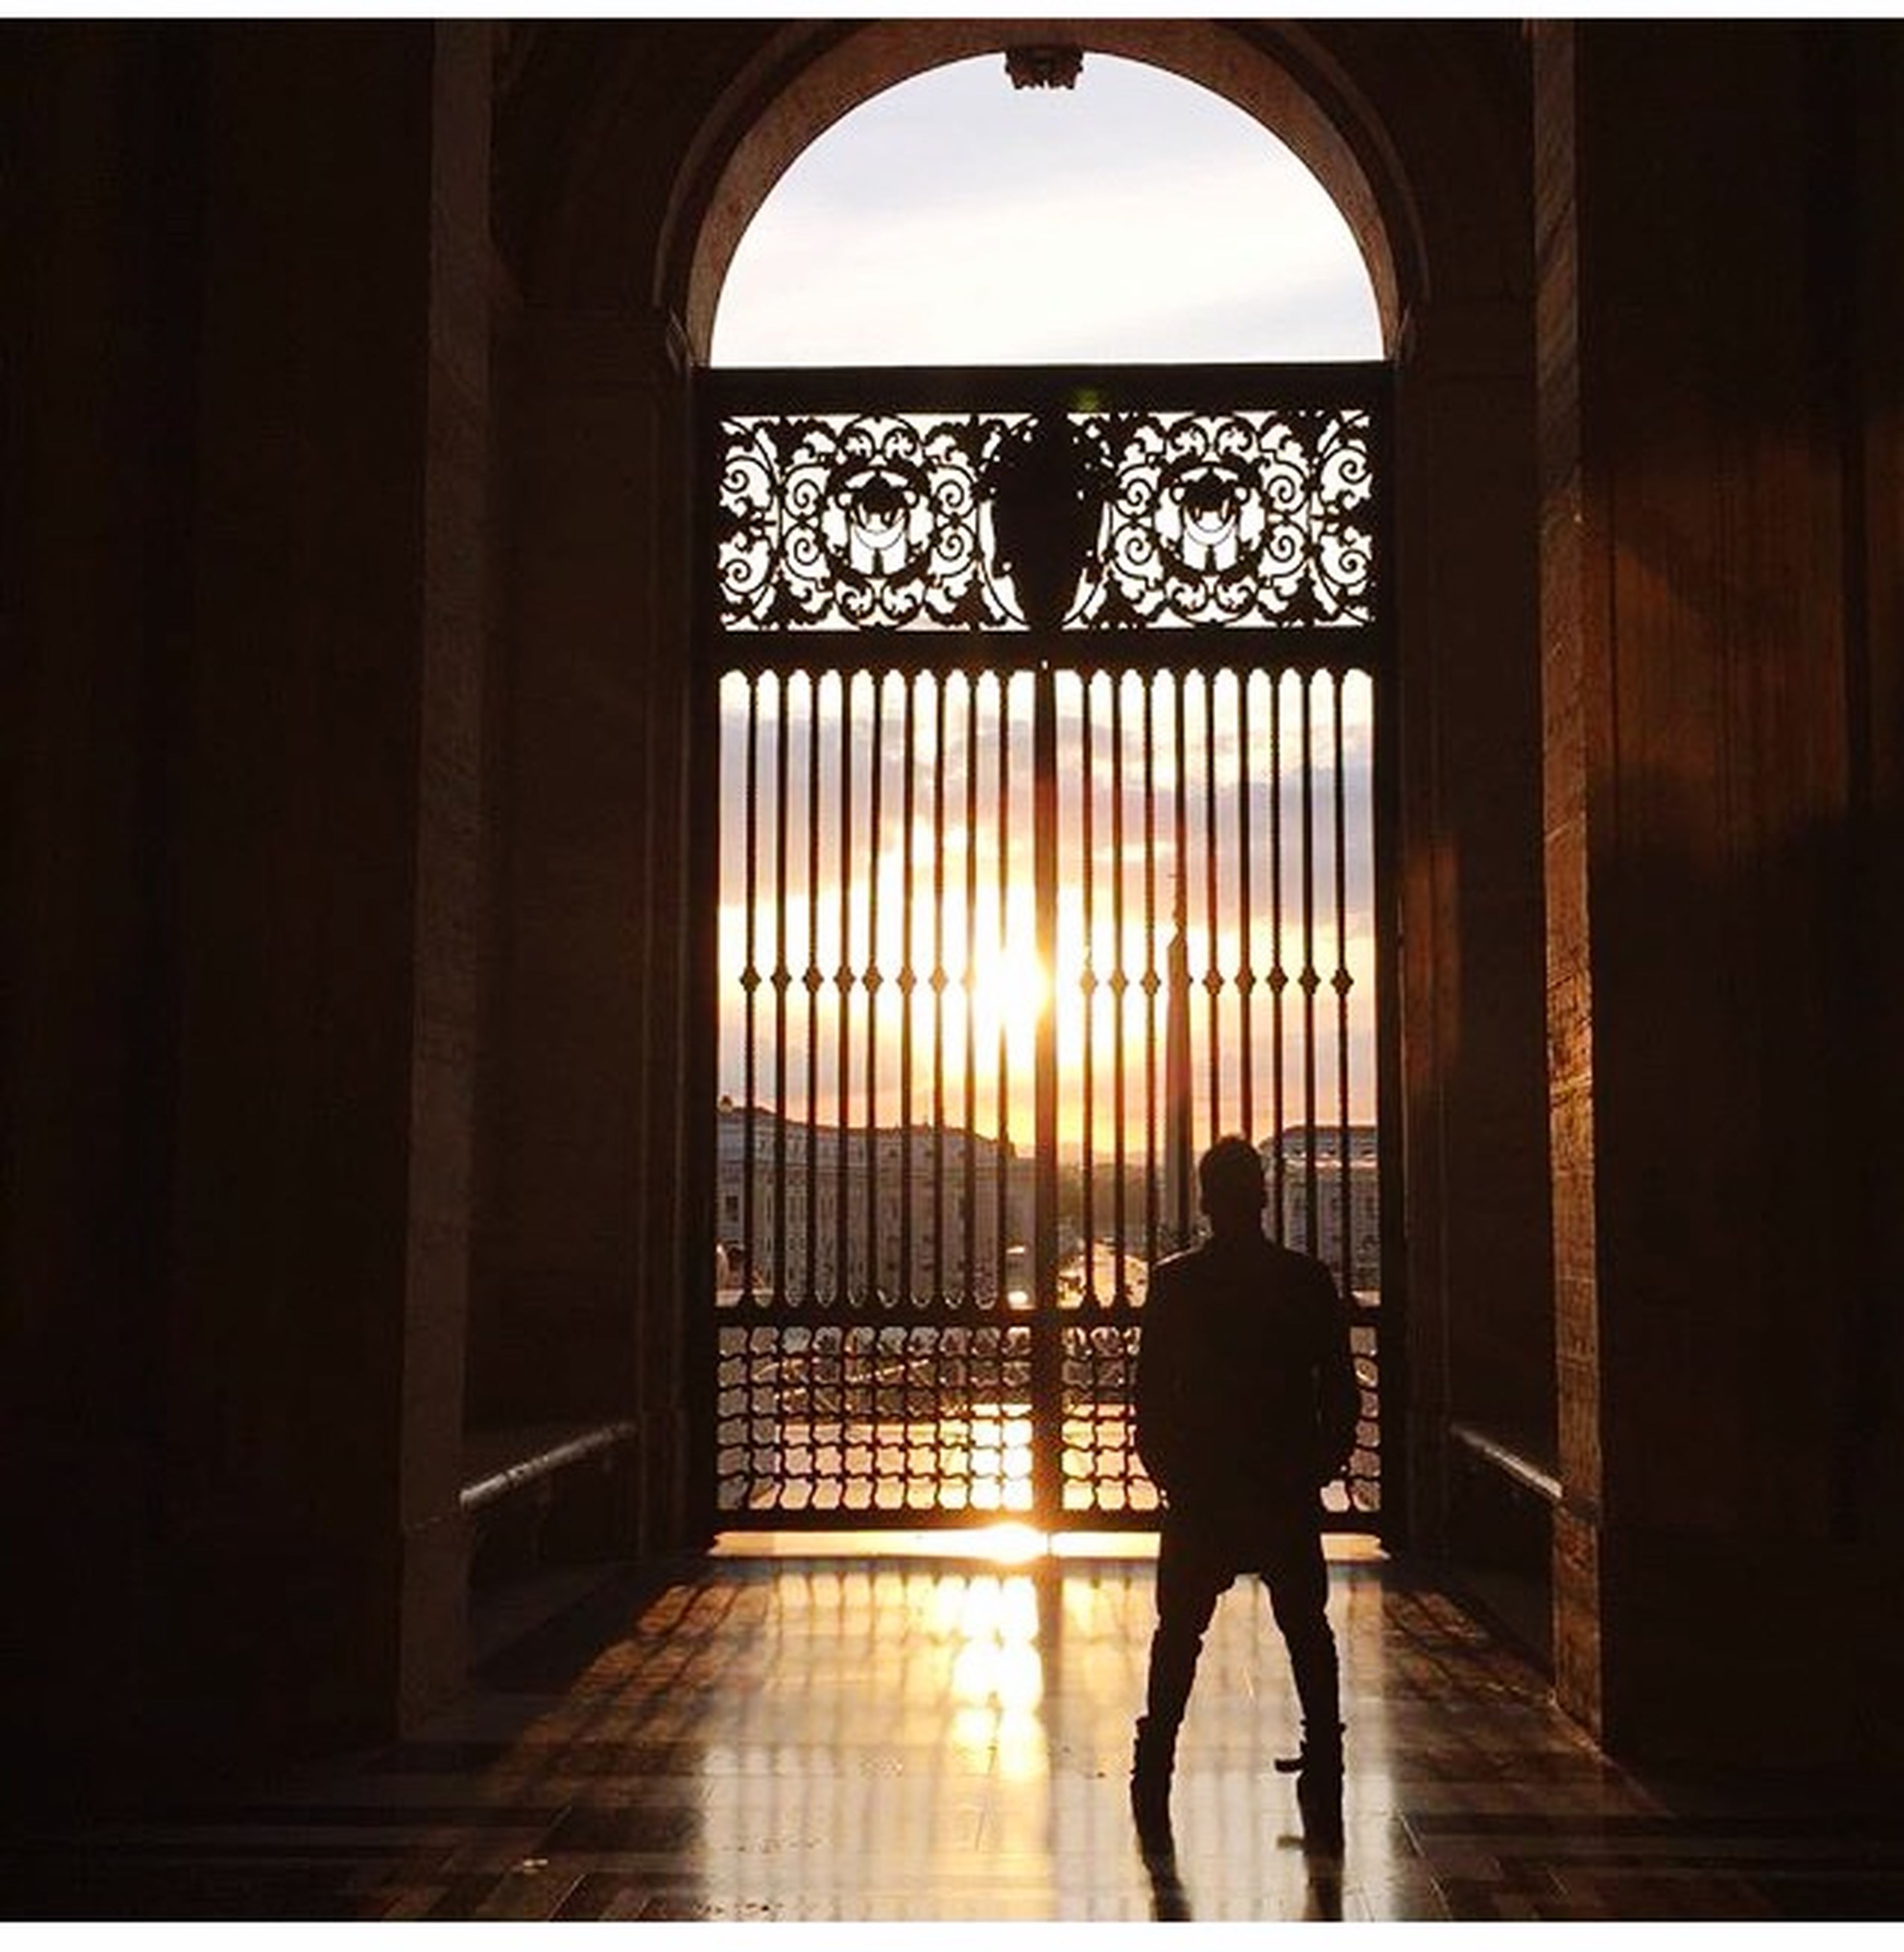 indoors, silhouette, full length, lifestyles, arch, architecture, built structure, men, rear view, walking, leisure activity, standing, person, sunlight, corridor, window, archway